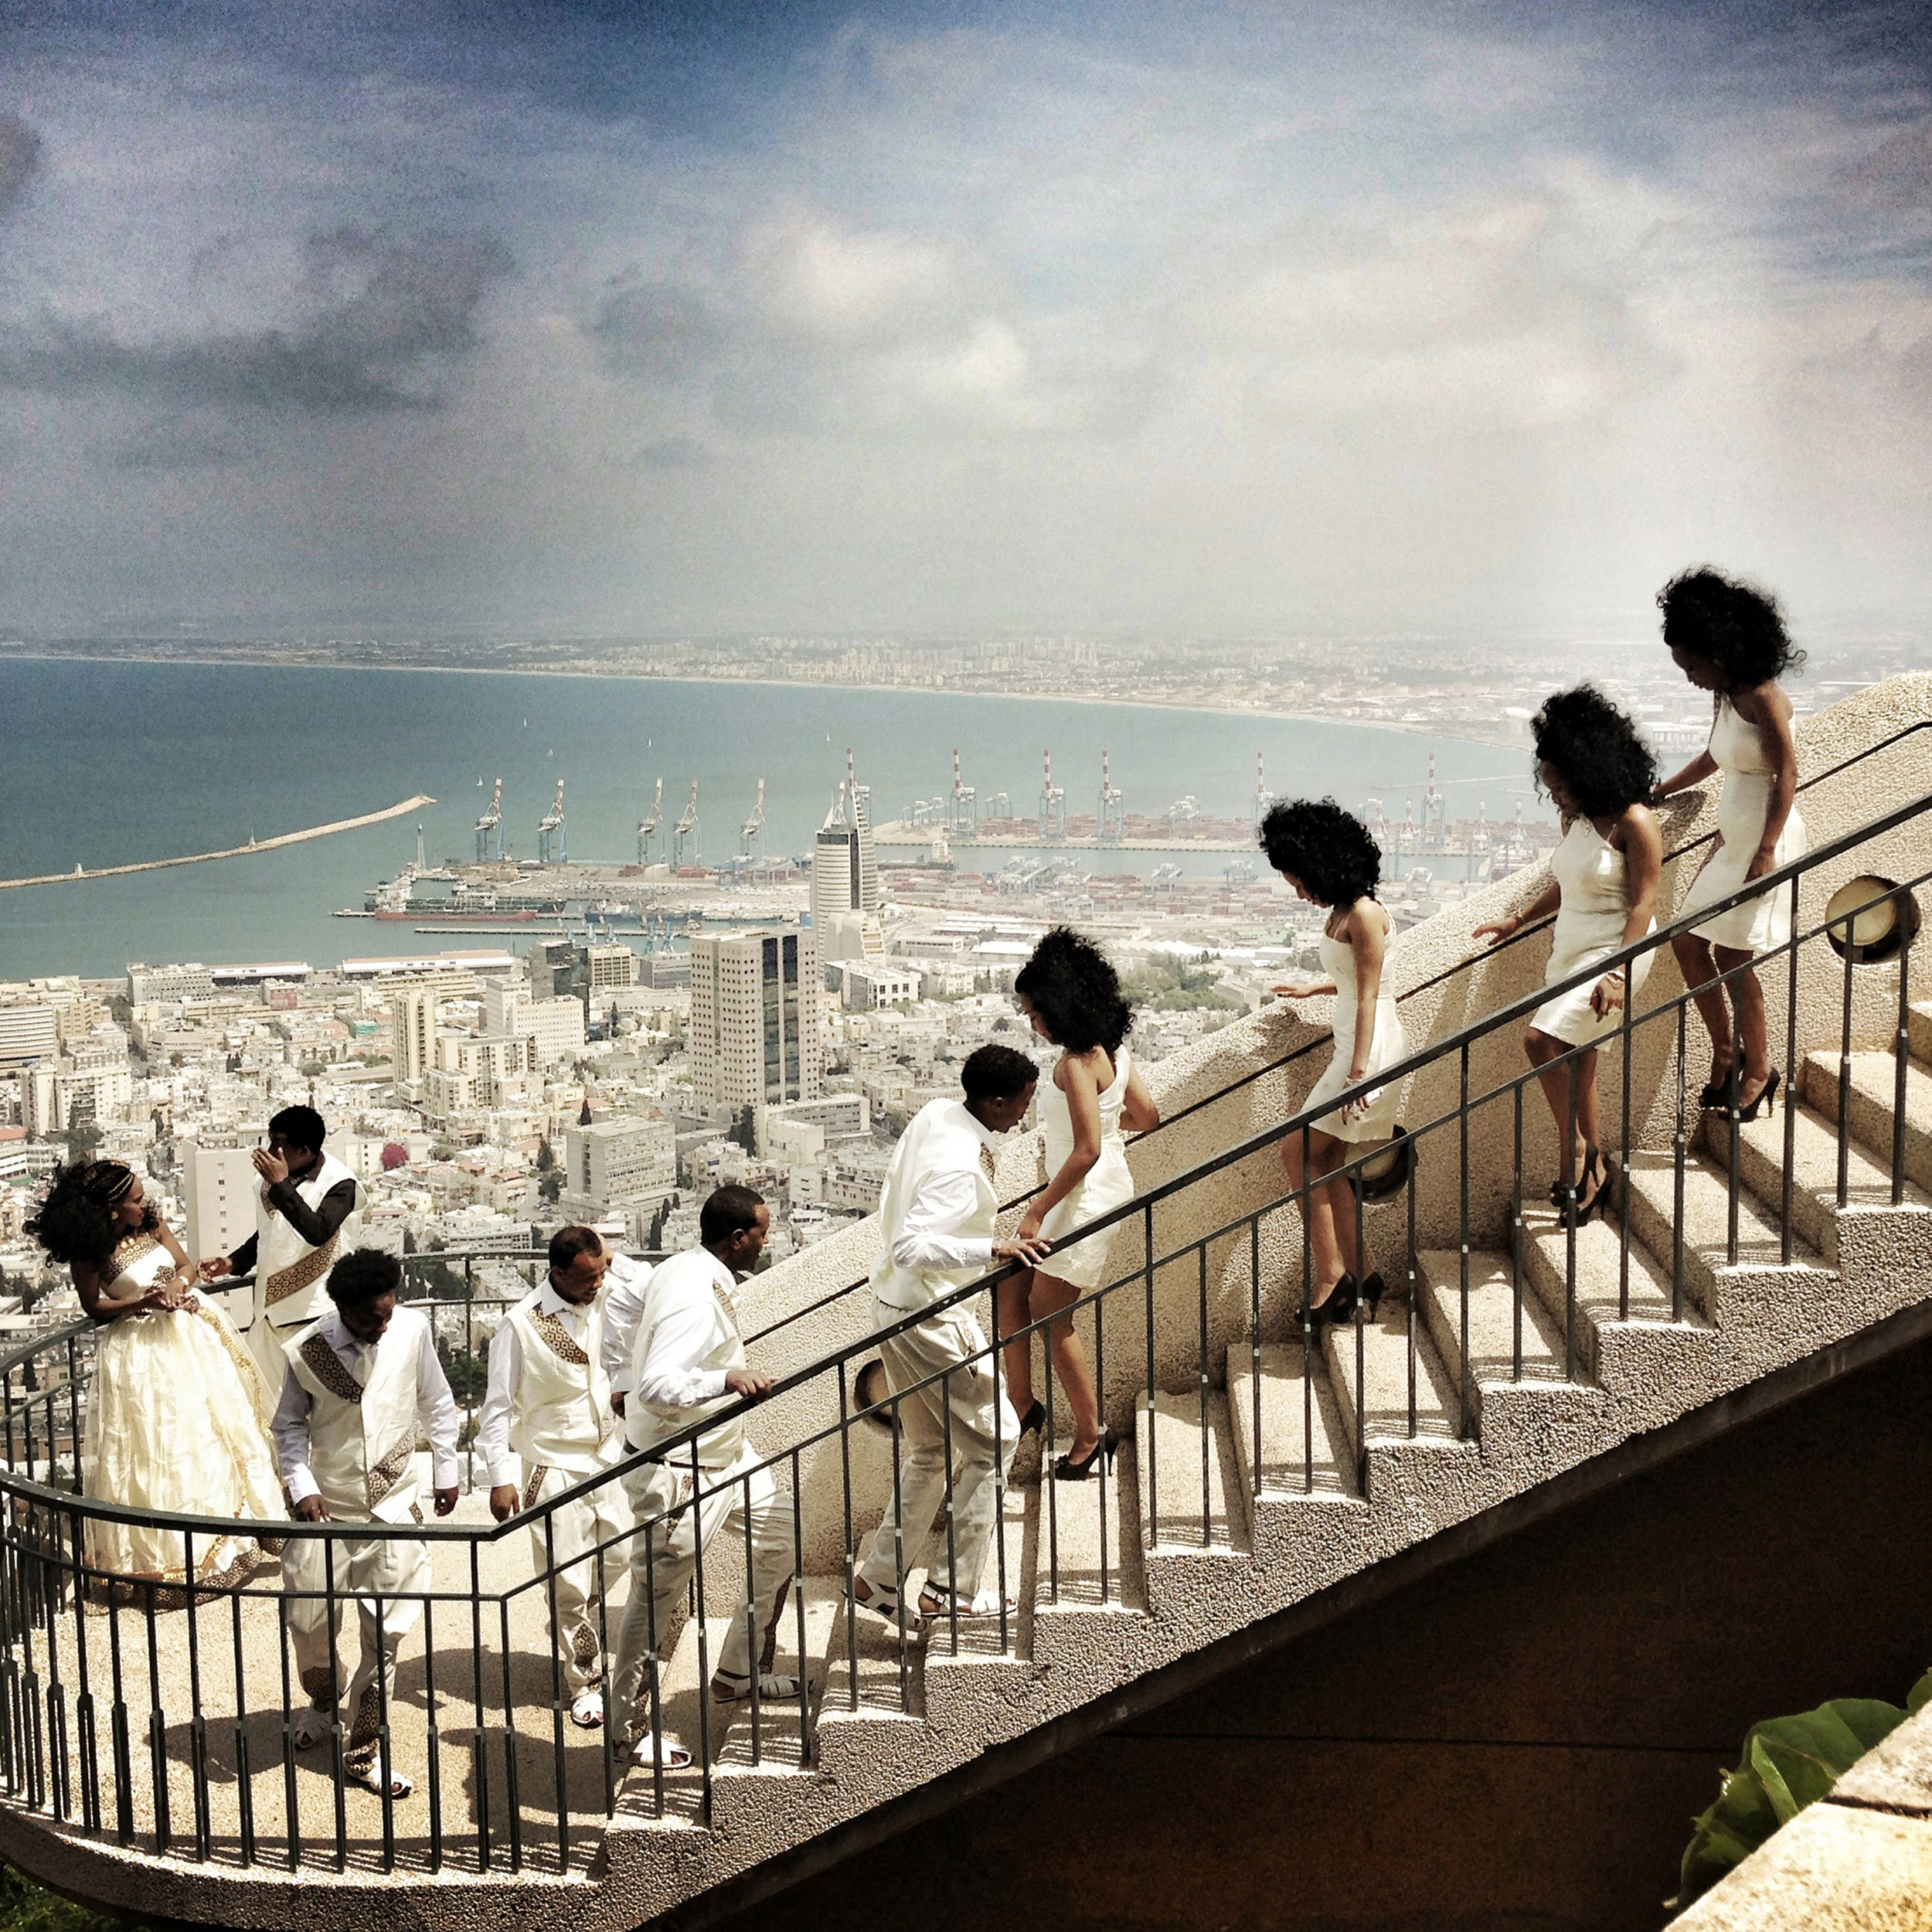 Malin Fezehai   Eritrean Wedding in Haifa  2014 C-print 40 x 40 cm